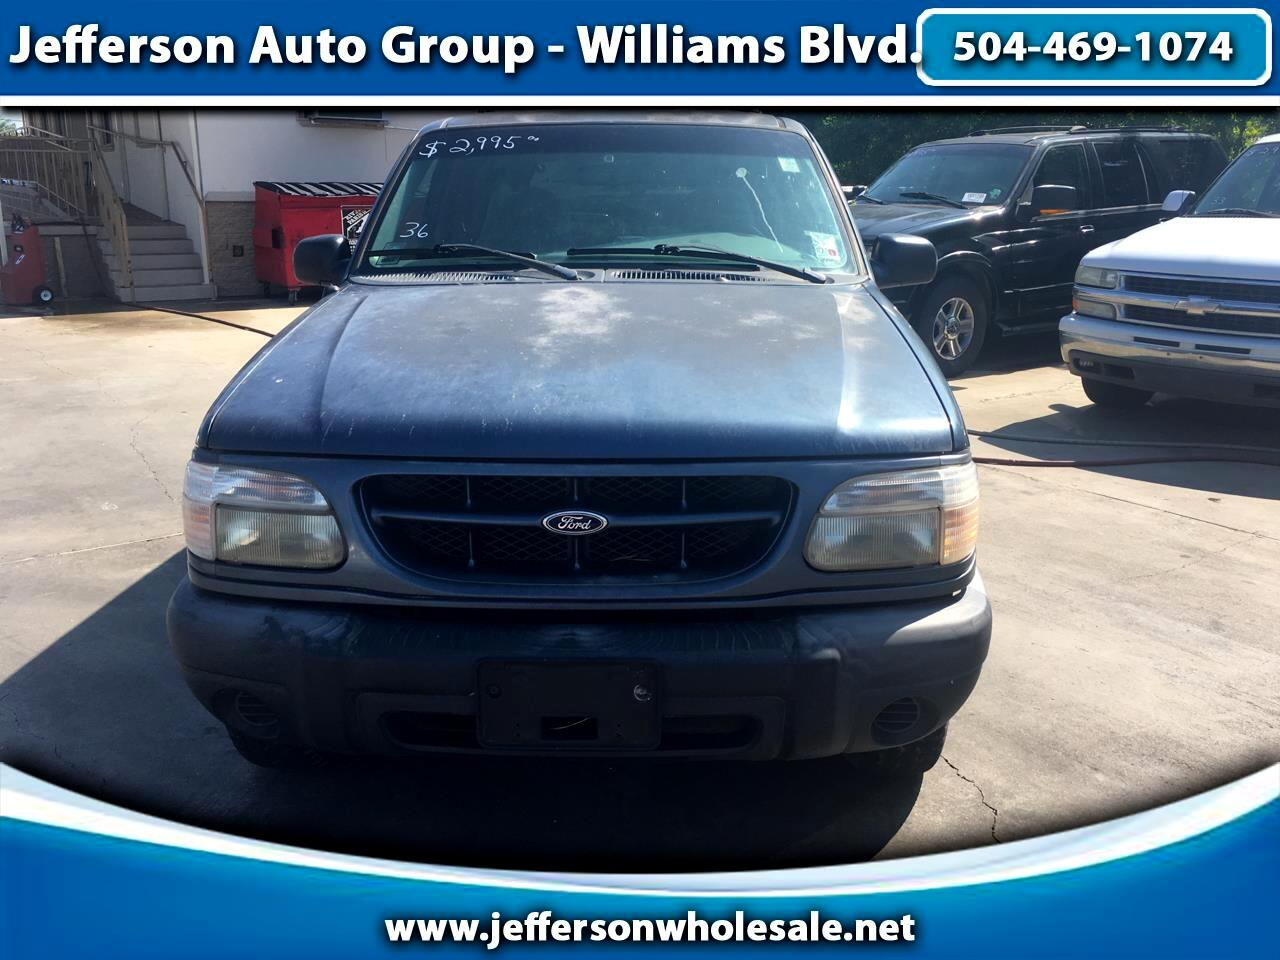 1999 Ford Explorer 2dr 102